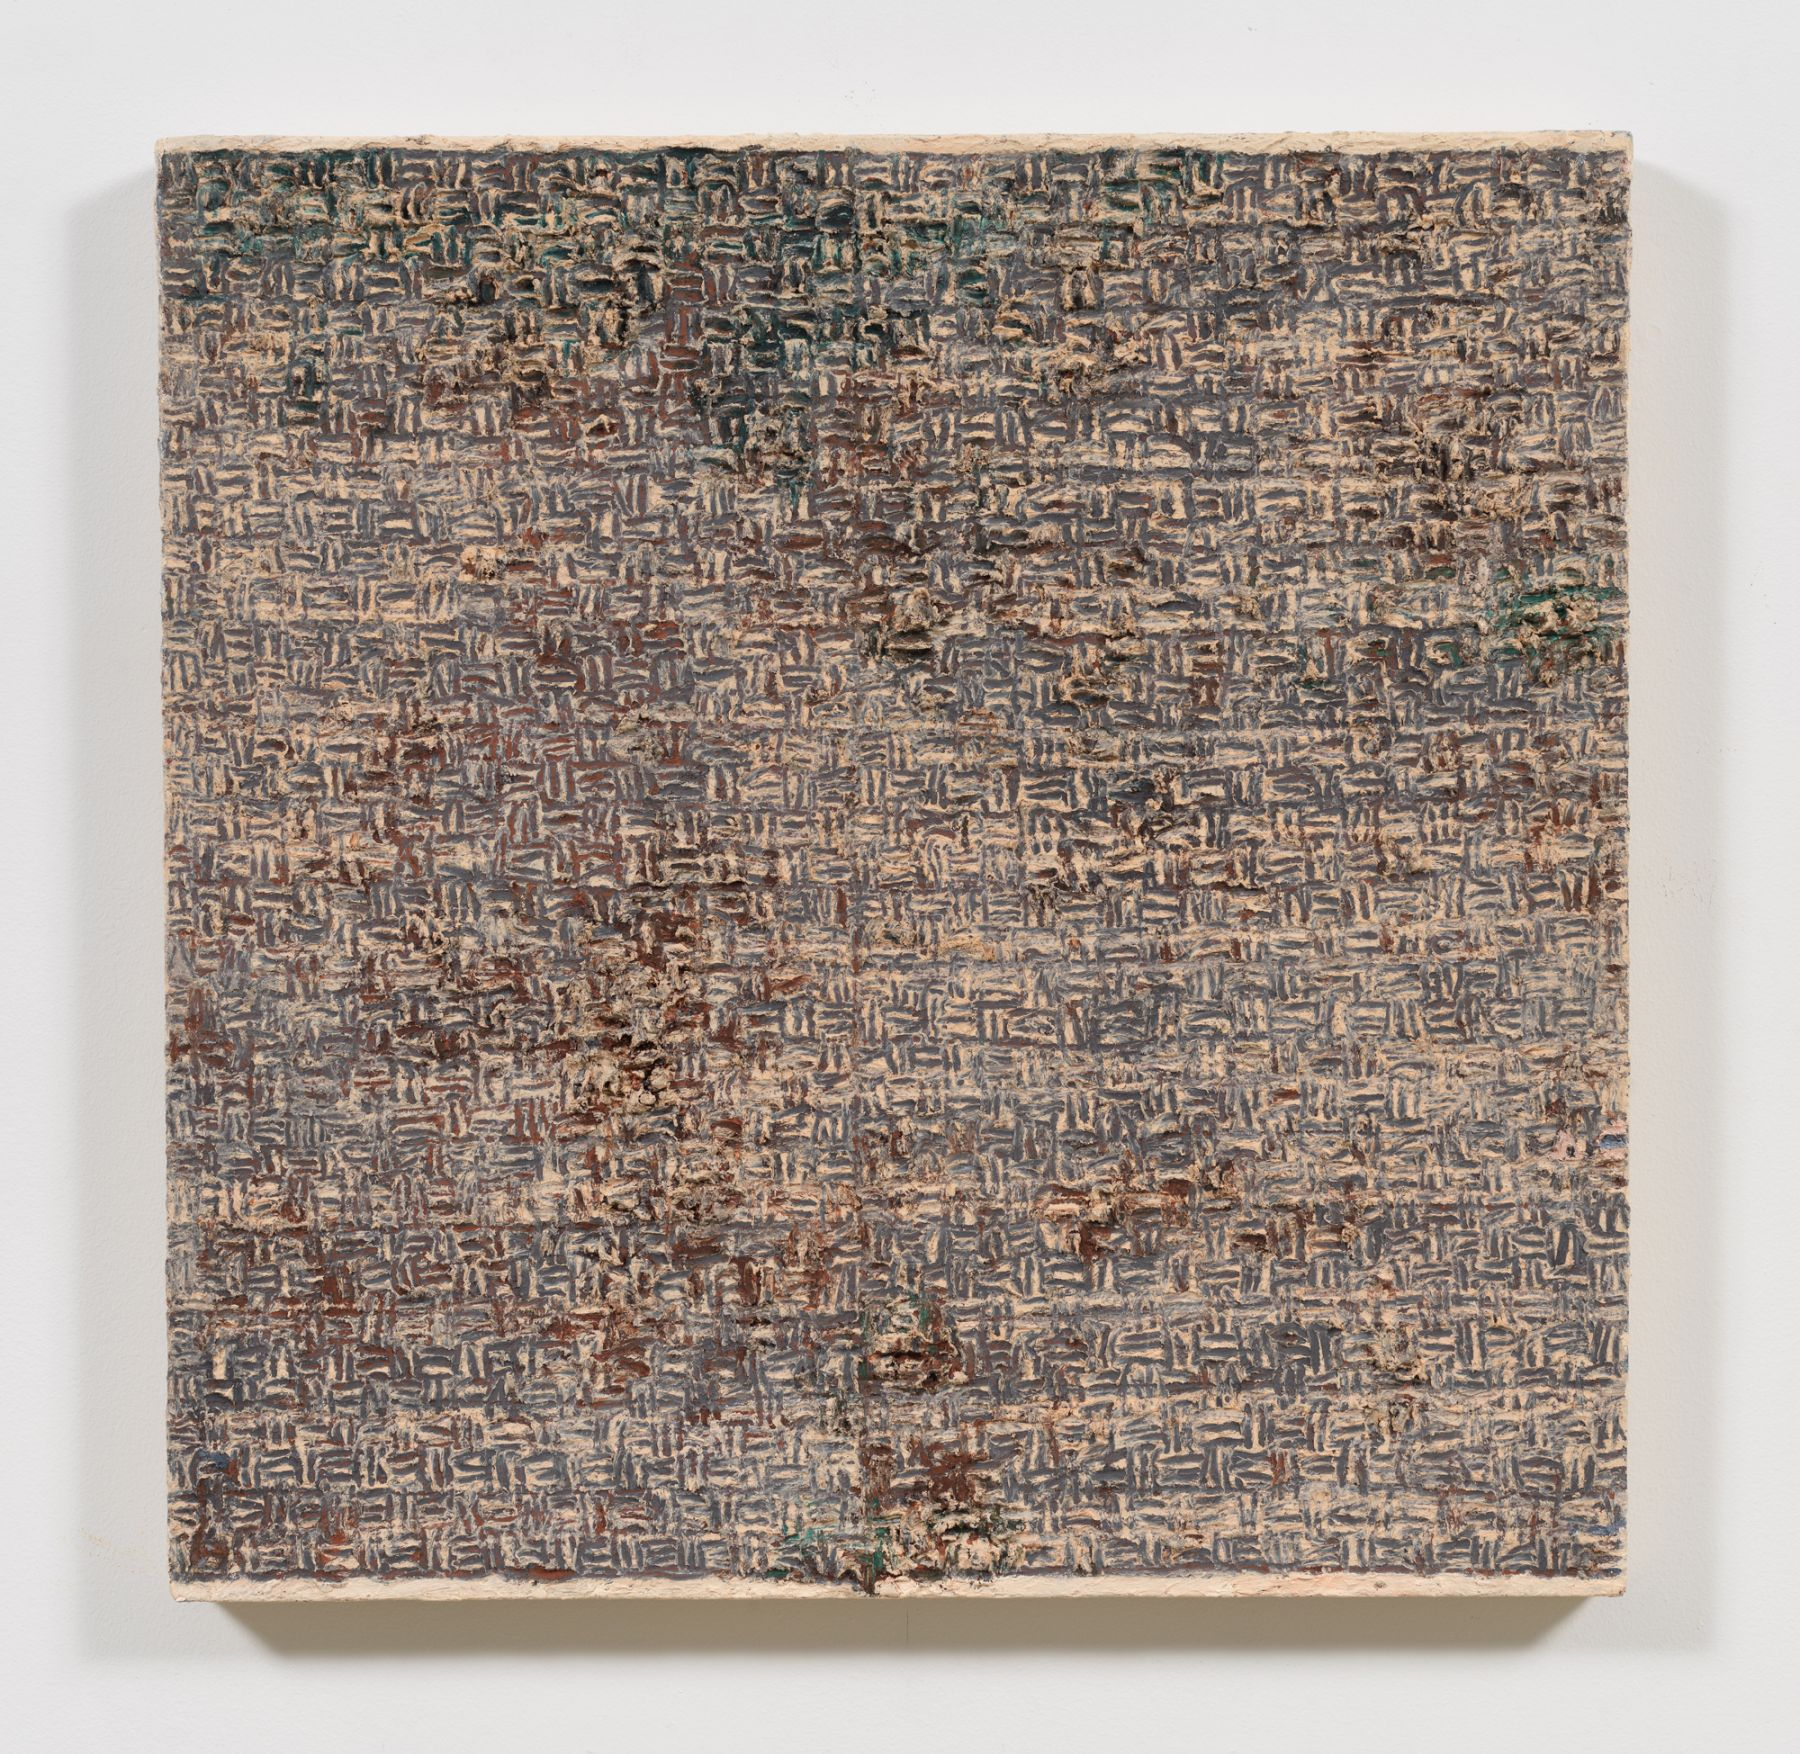 Pink Weave, 1975, Oil and Dorland's wax on canvas